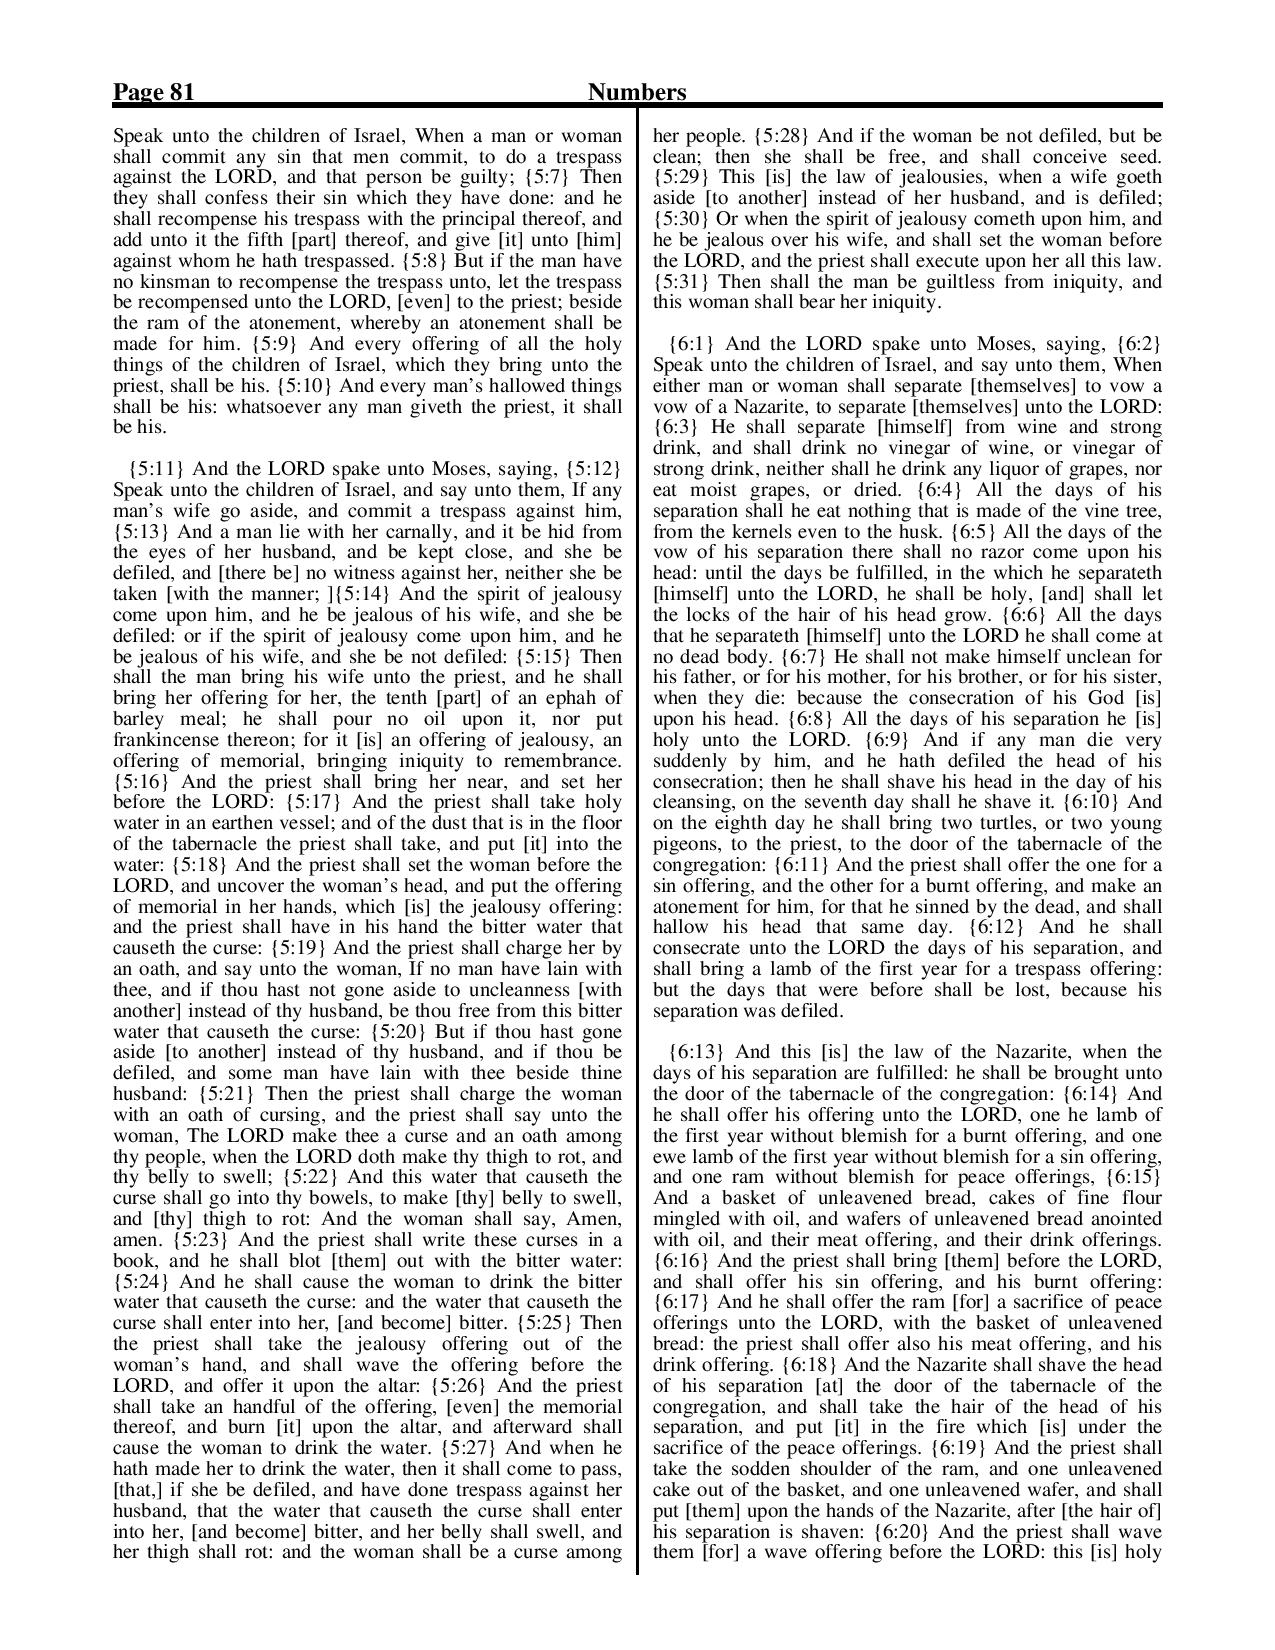 King-James-Bible-KJV-Bible-PDF-page-102